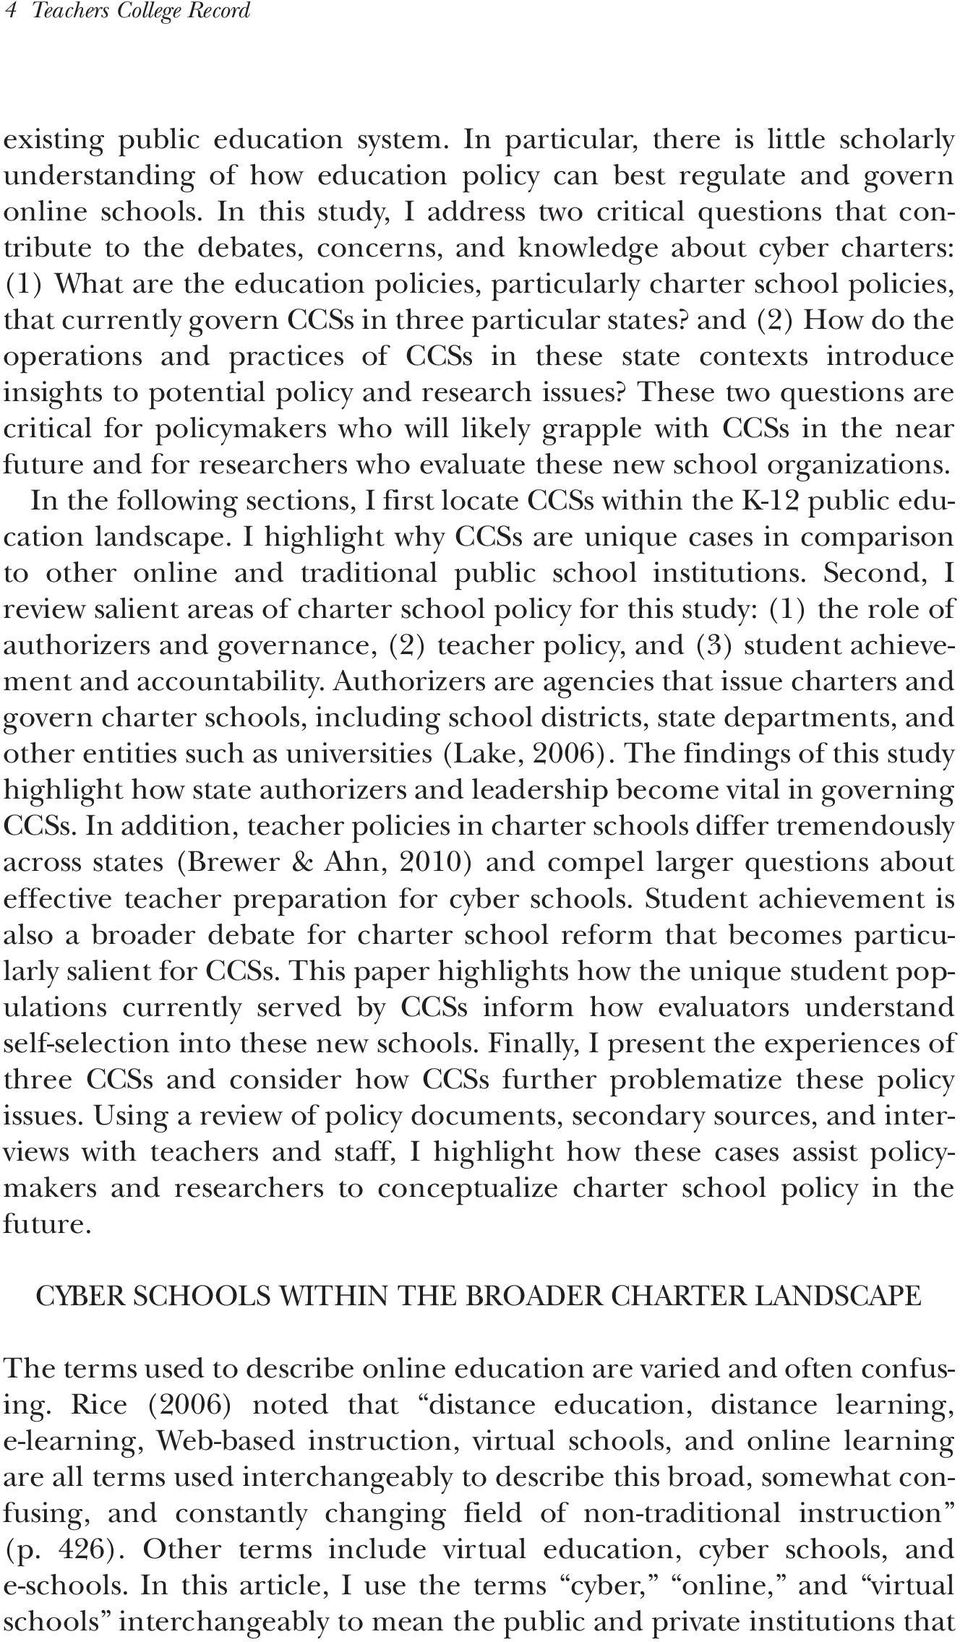 policies, that currently govern CCSs in three particular states? and (2) How do the operations and practices of CCSs in these state contexts introduce insights to potential policy and research issues?